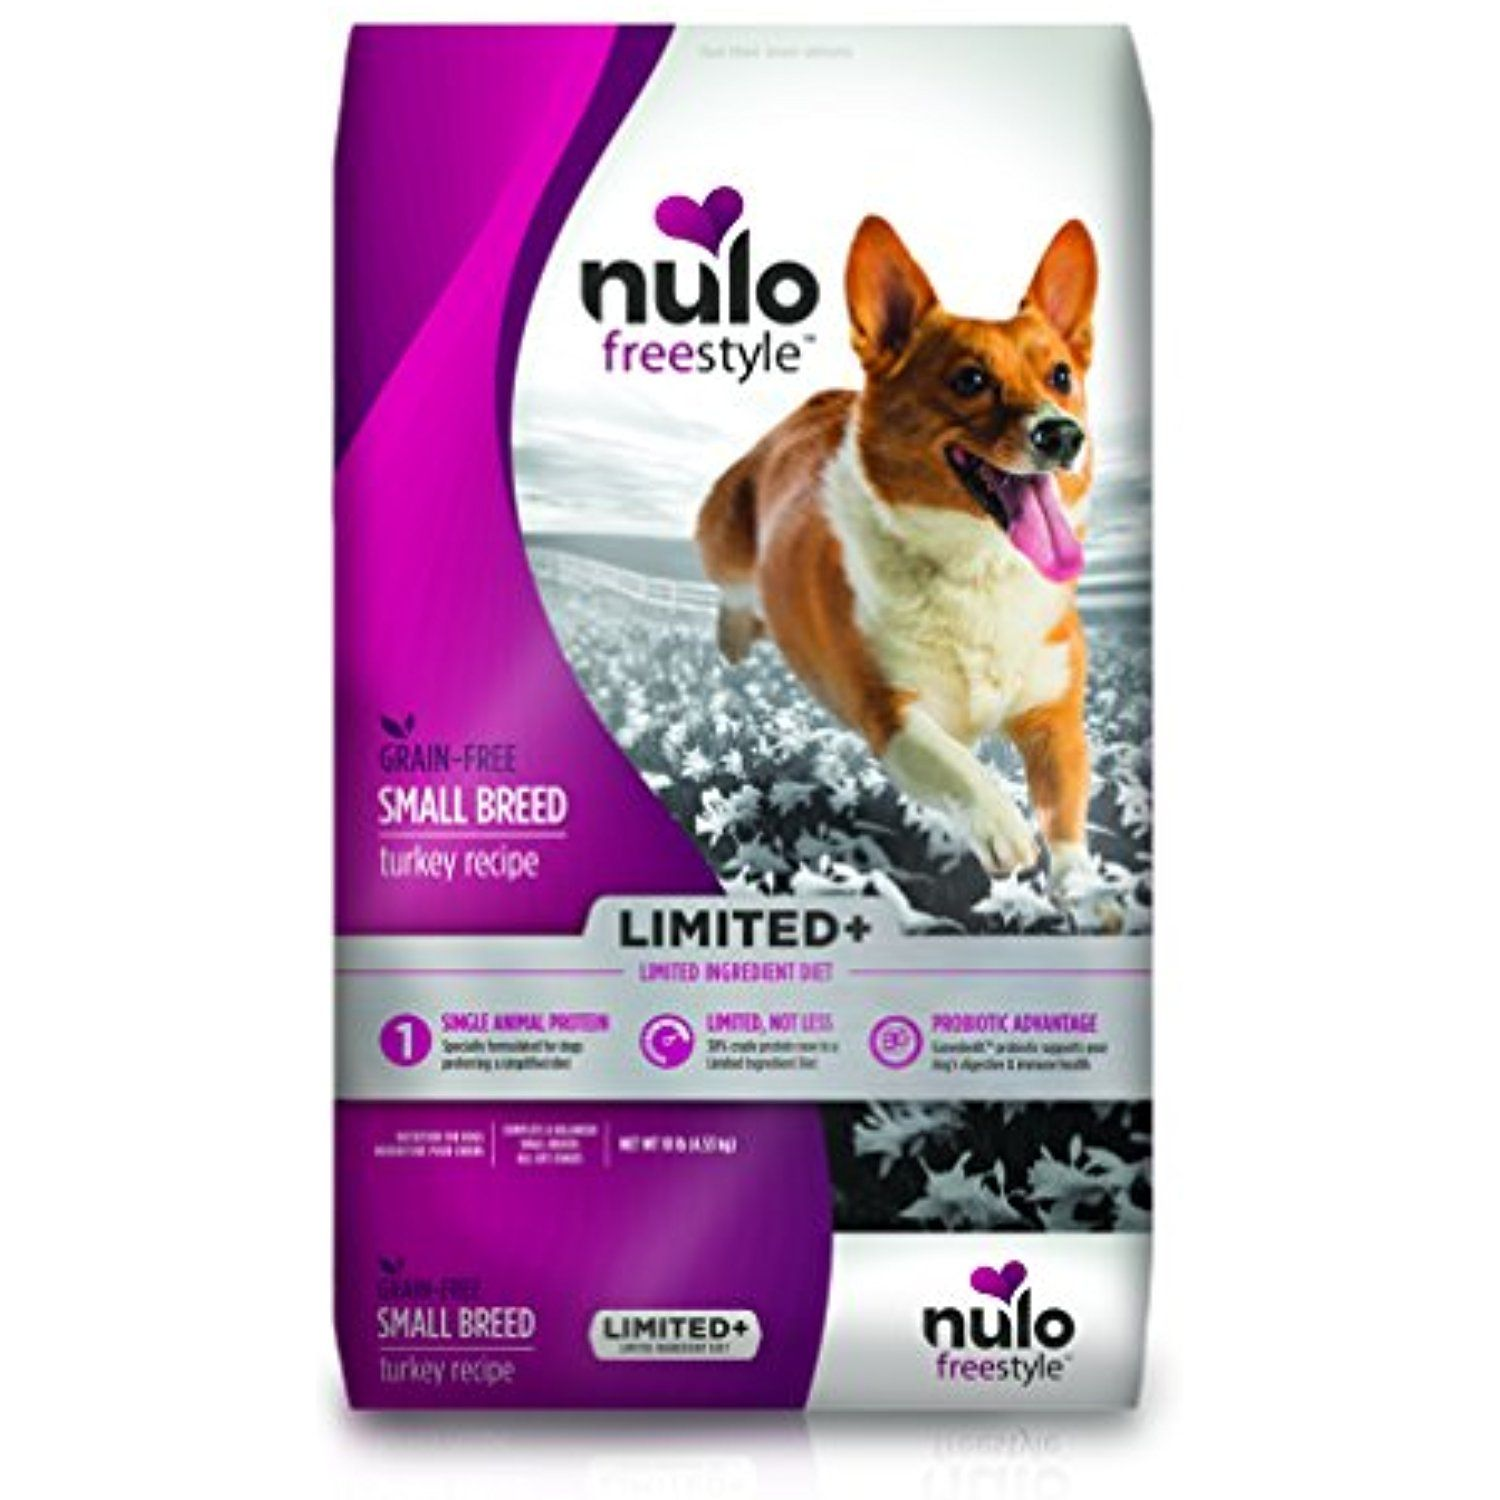 Nulo freestyle dog limited plus grain free small breed